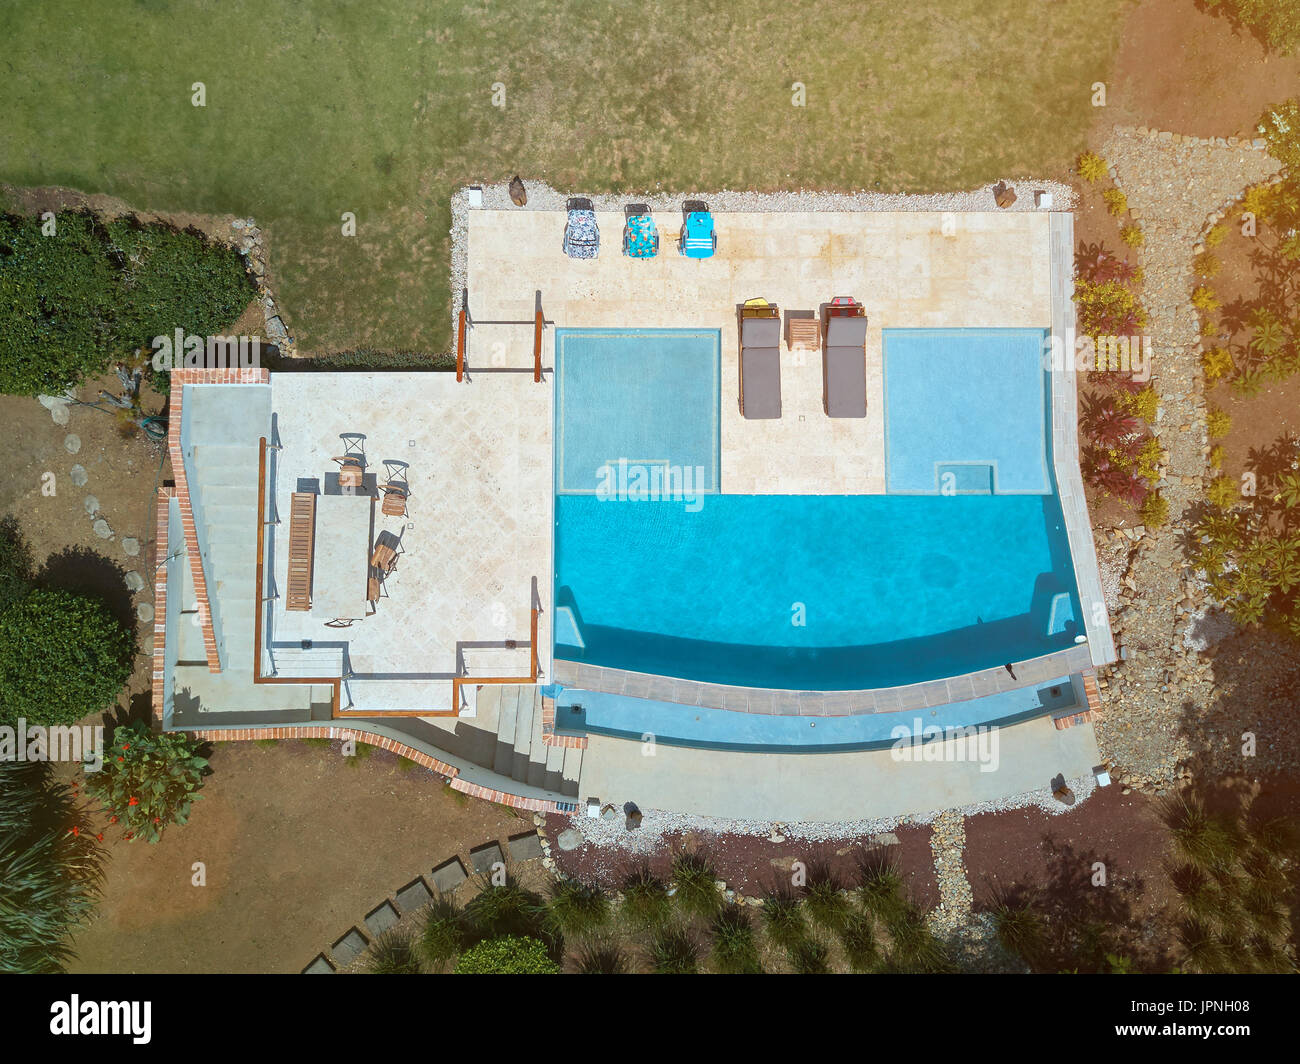 Pool with seats and chairs above top view from drone Stock Photo ...